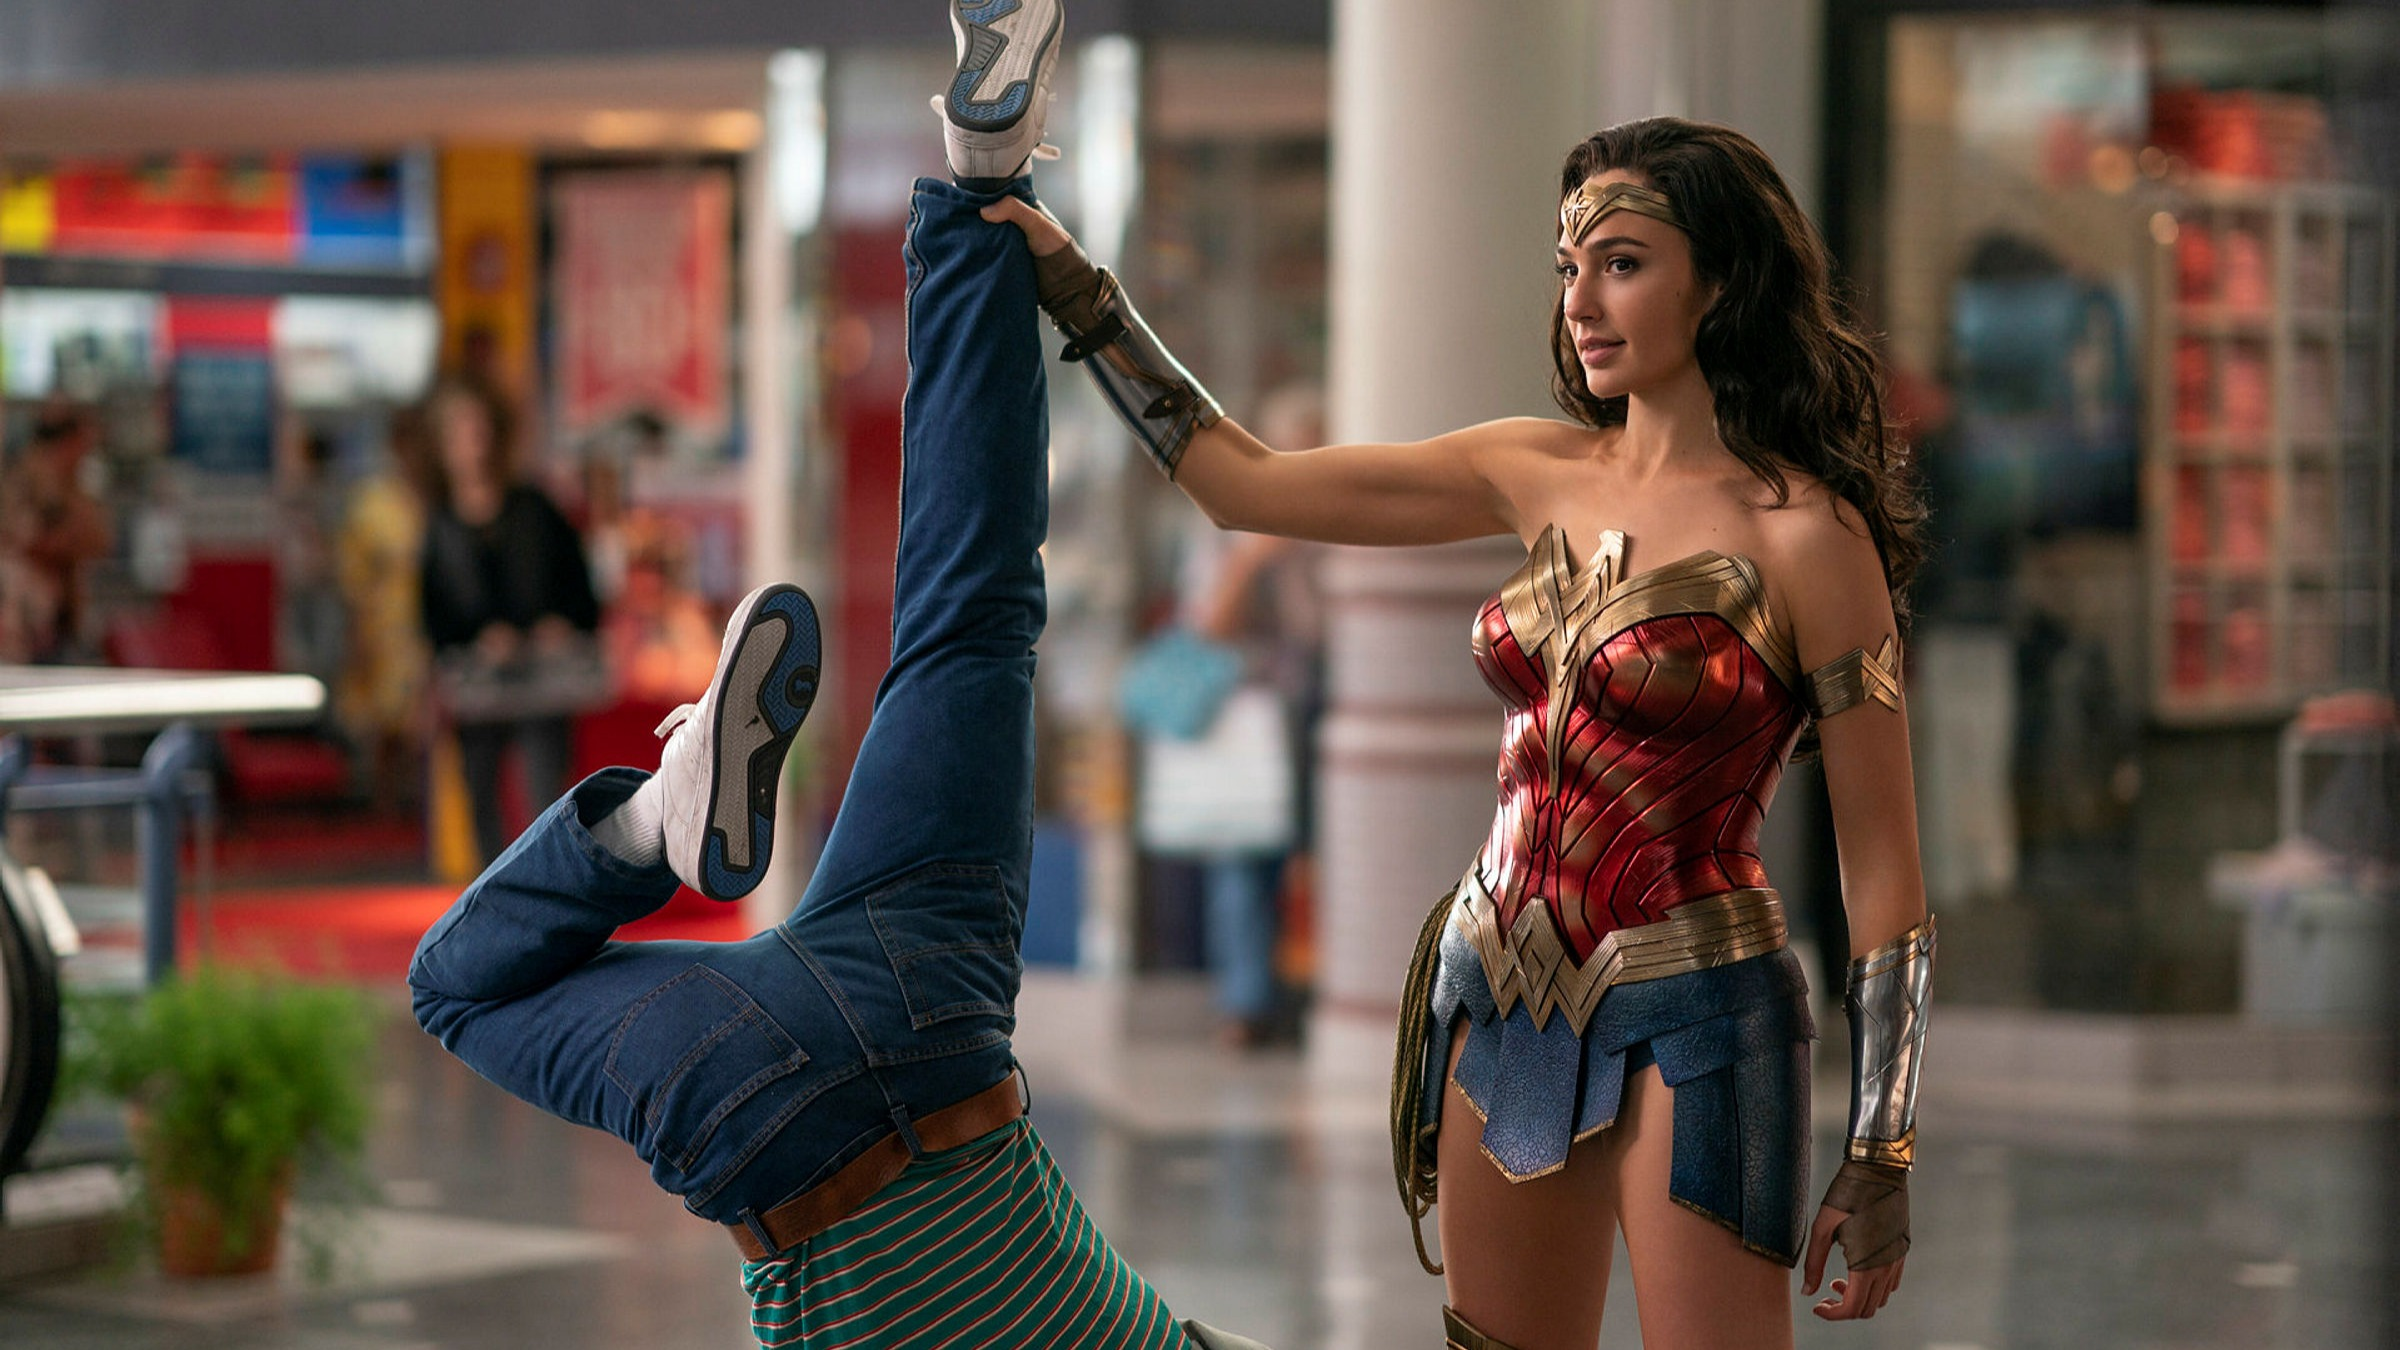 Wonder Woman 1984 — the heady escapism we need right now | Financial Times